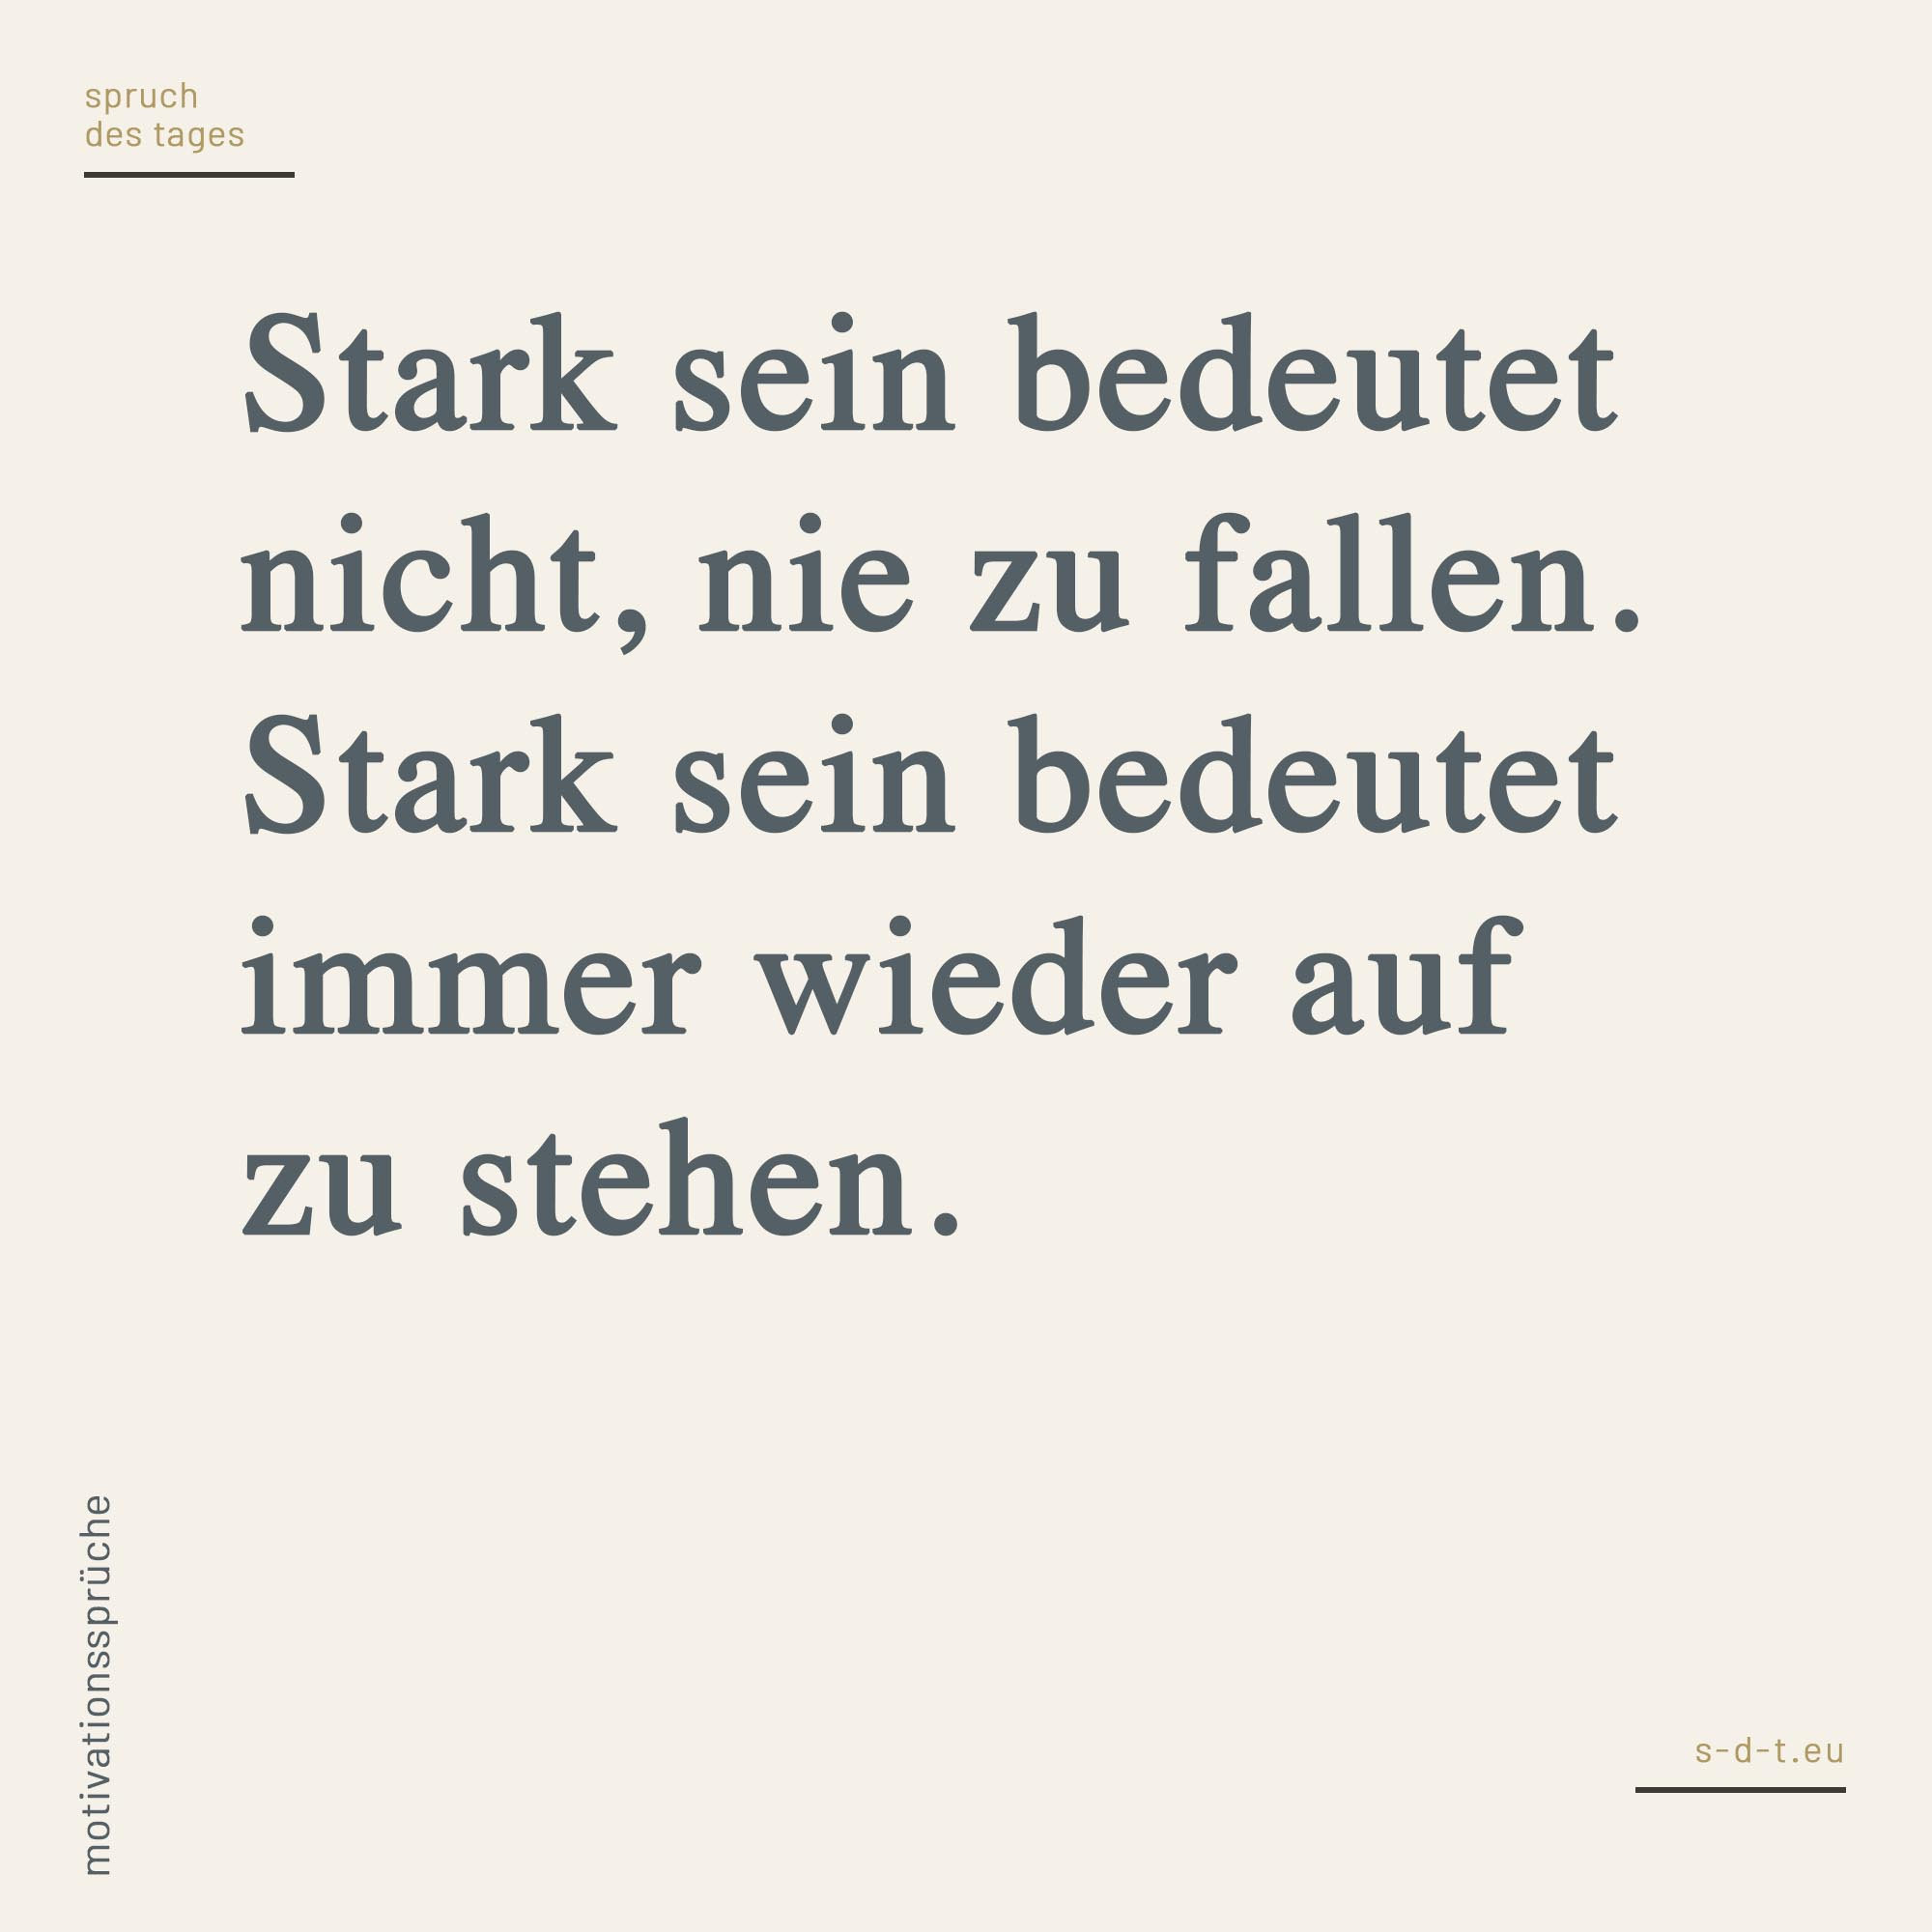 Motivation spruch-des-tages.eu